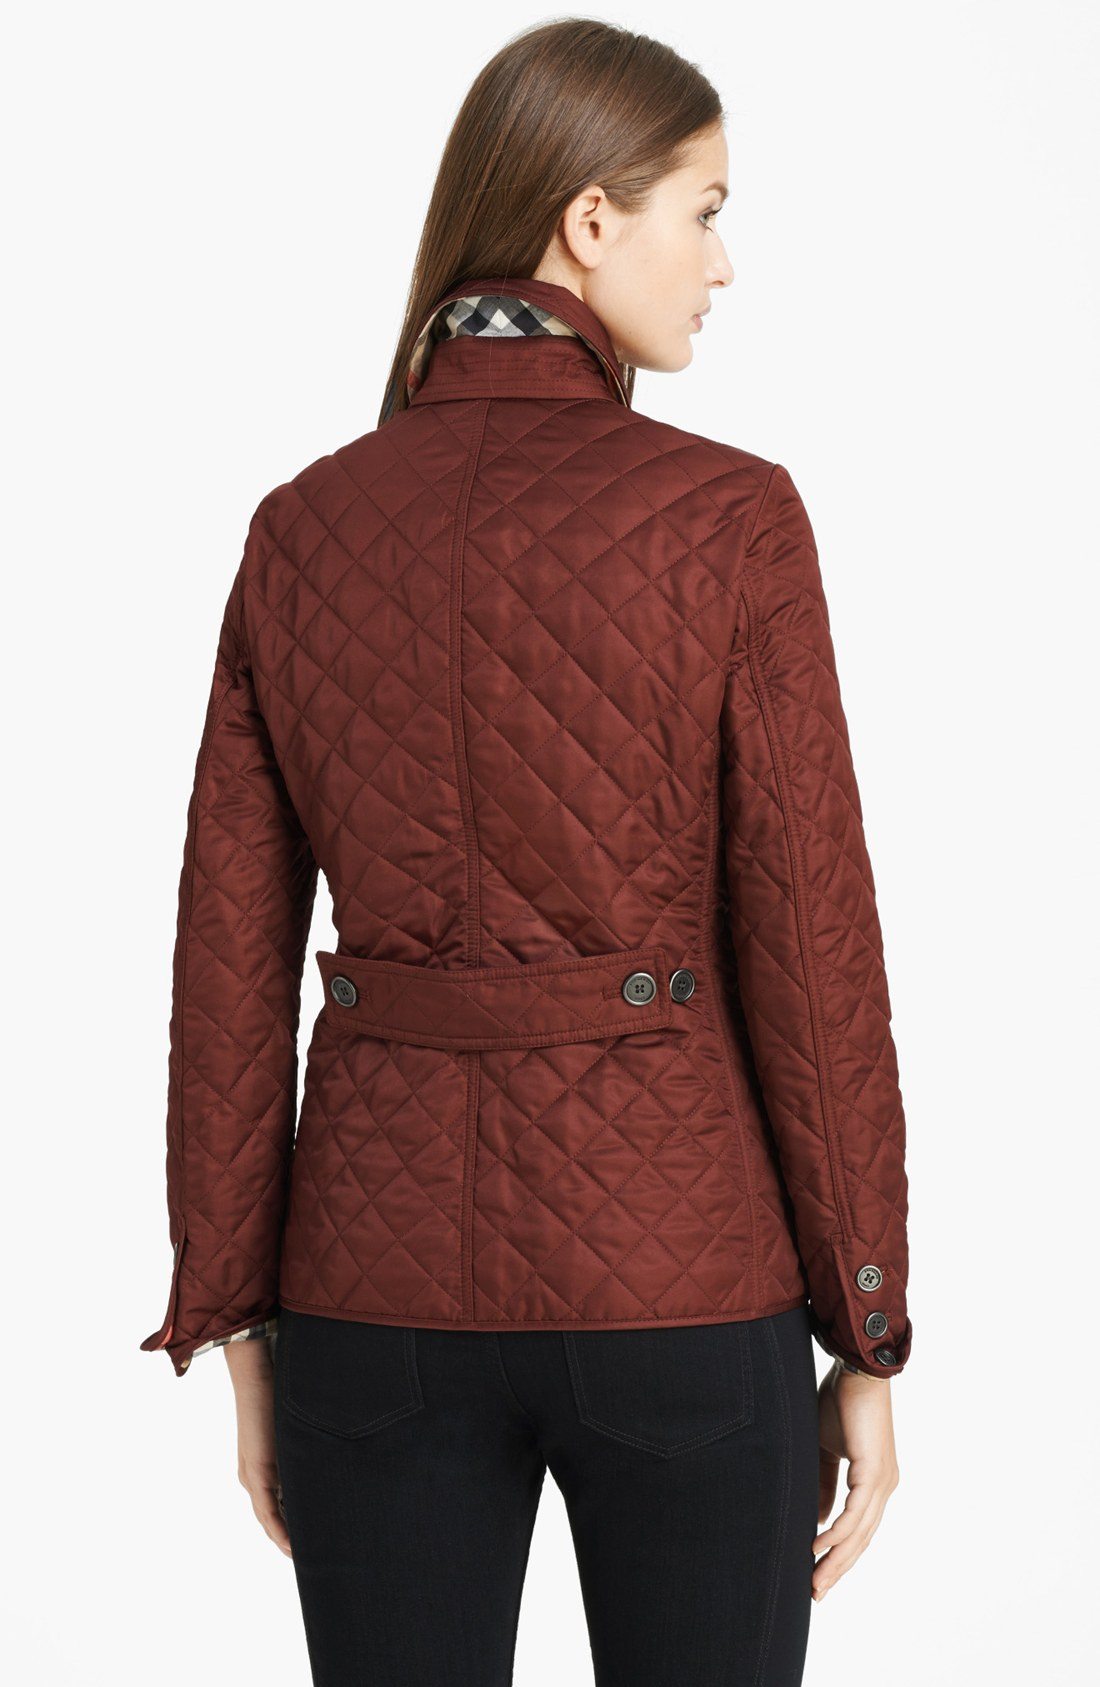 Burberry brit Copford Quilted Jacket in Brown | Lyst : copford quilted jacket - Adamdwight.com